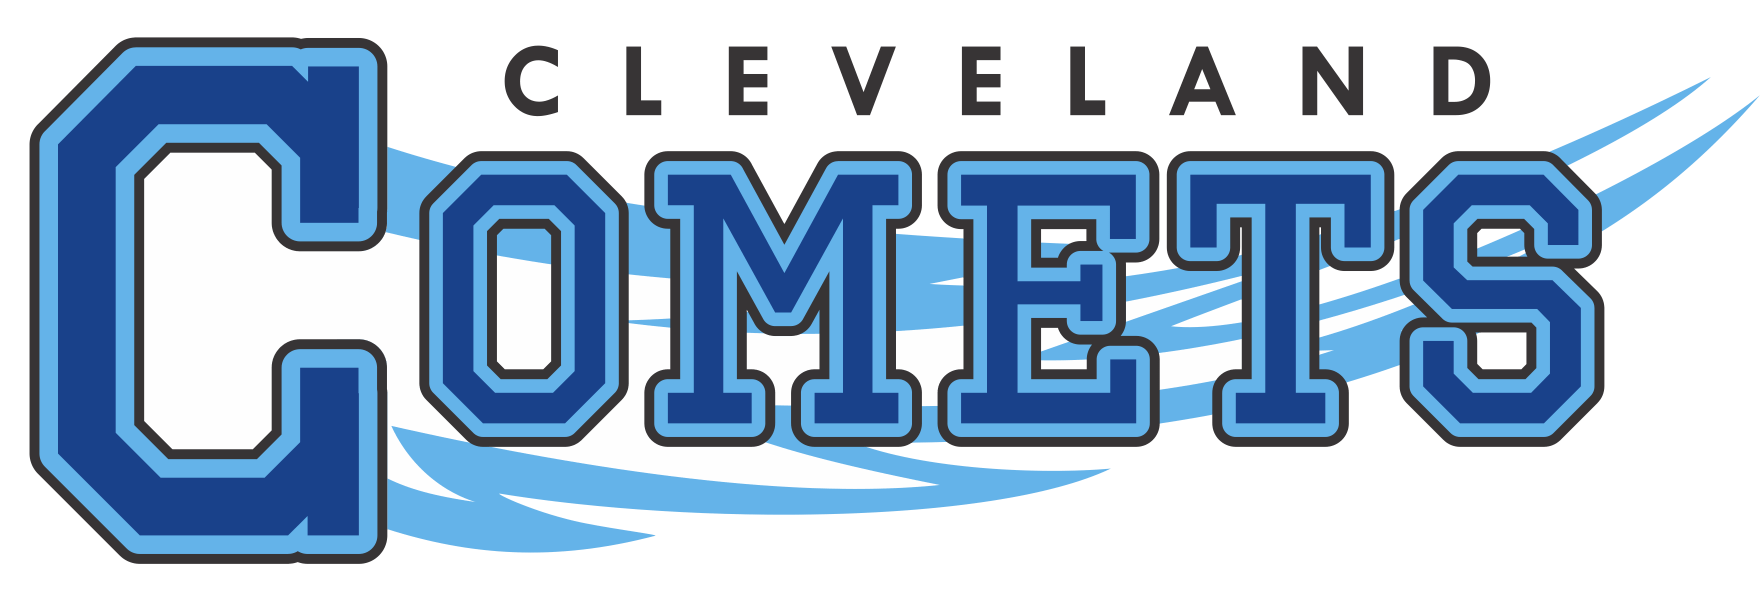 Cleveland Comets